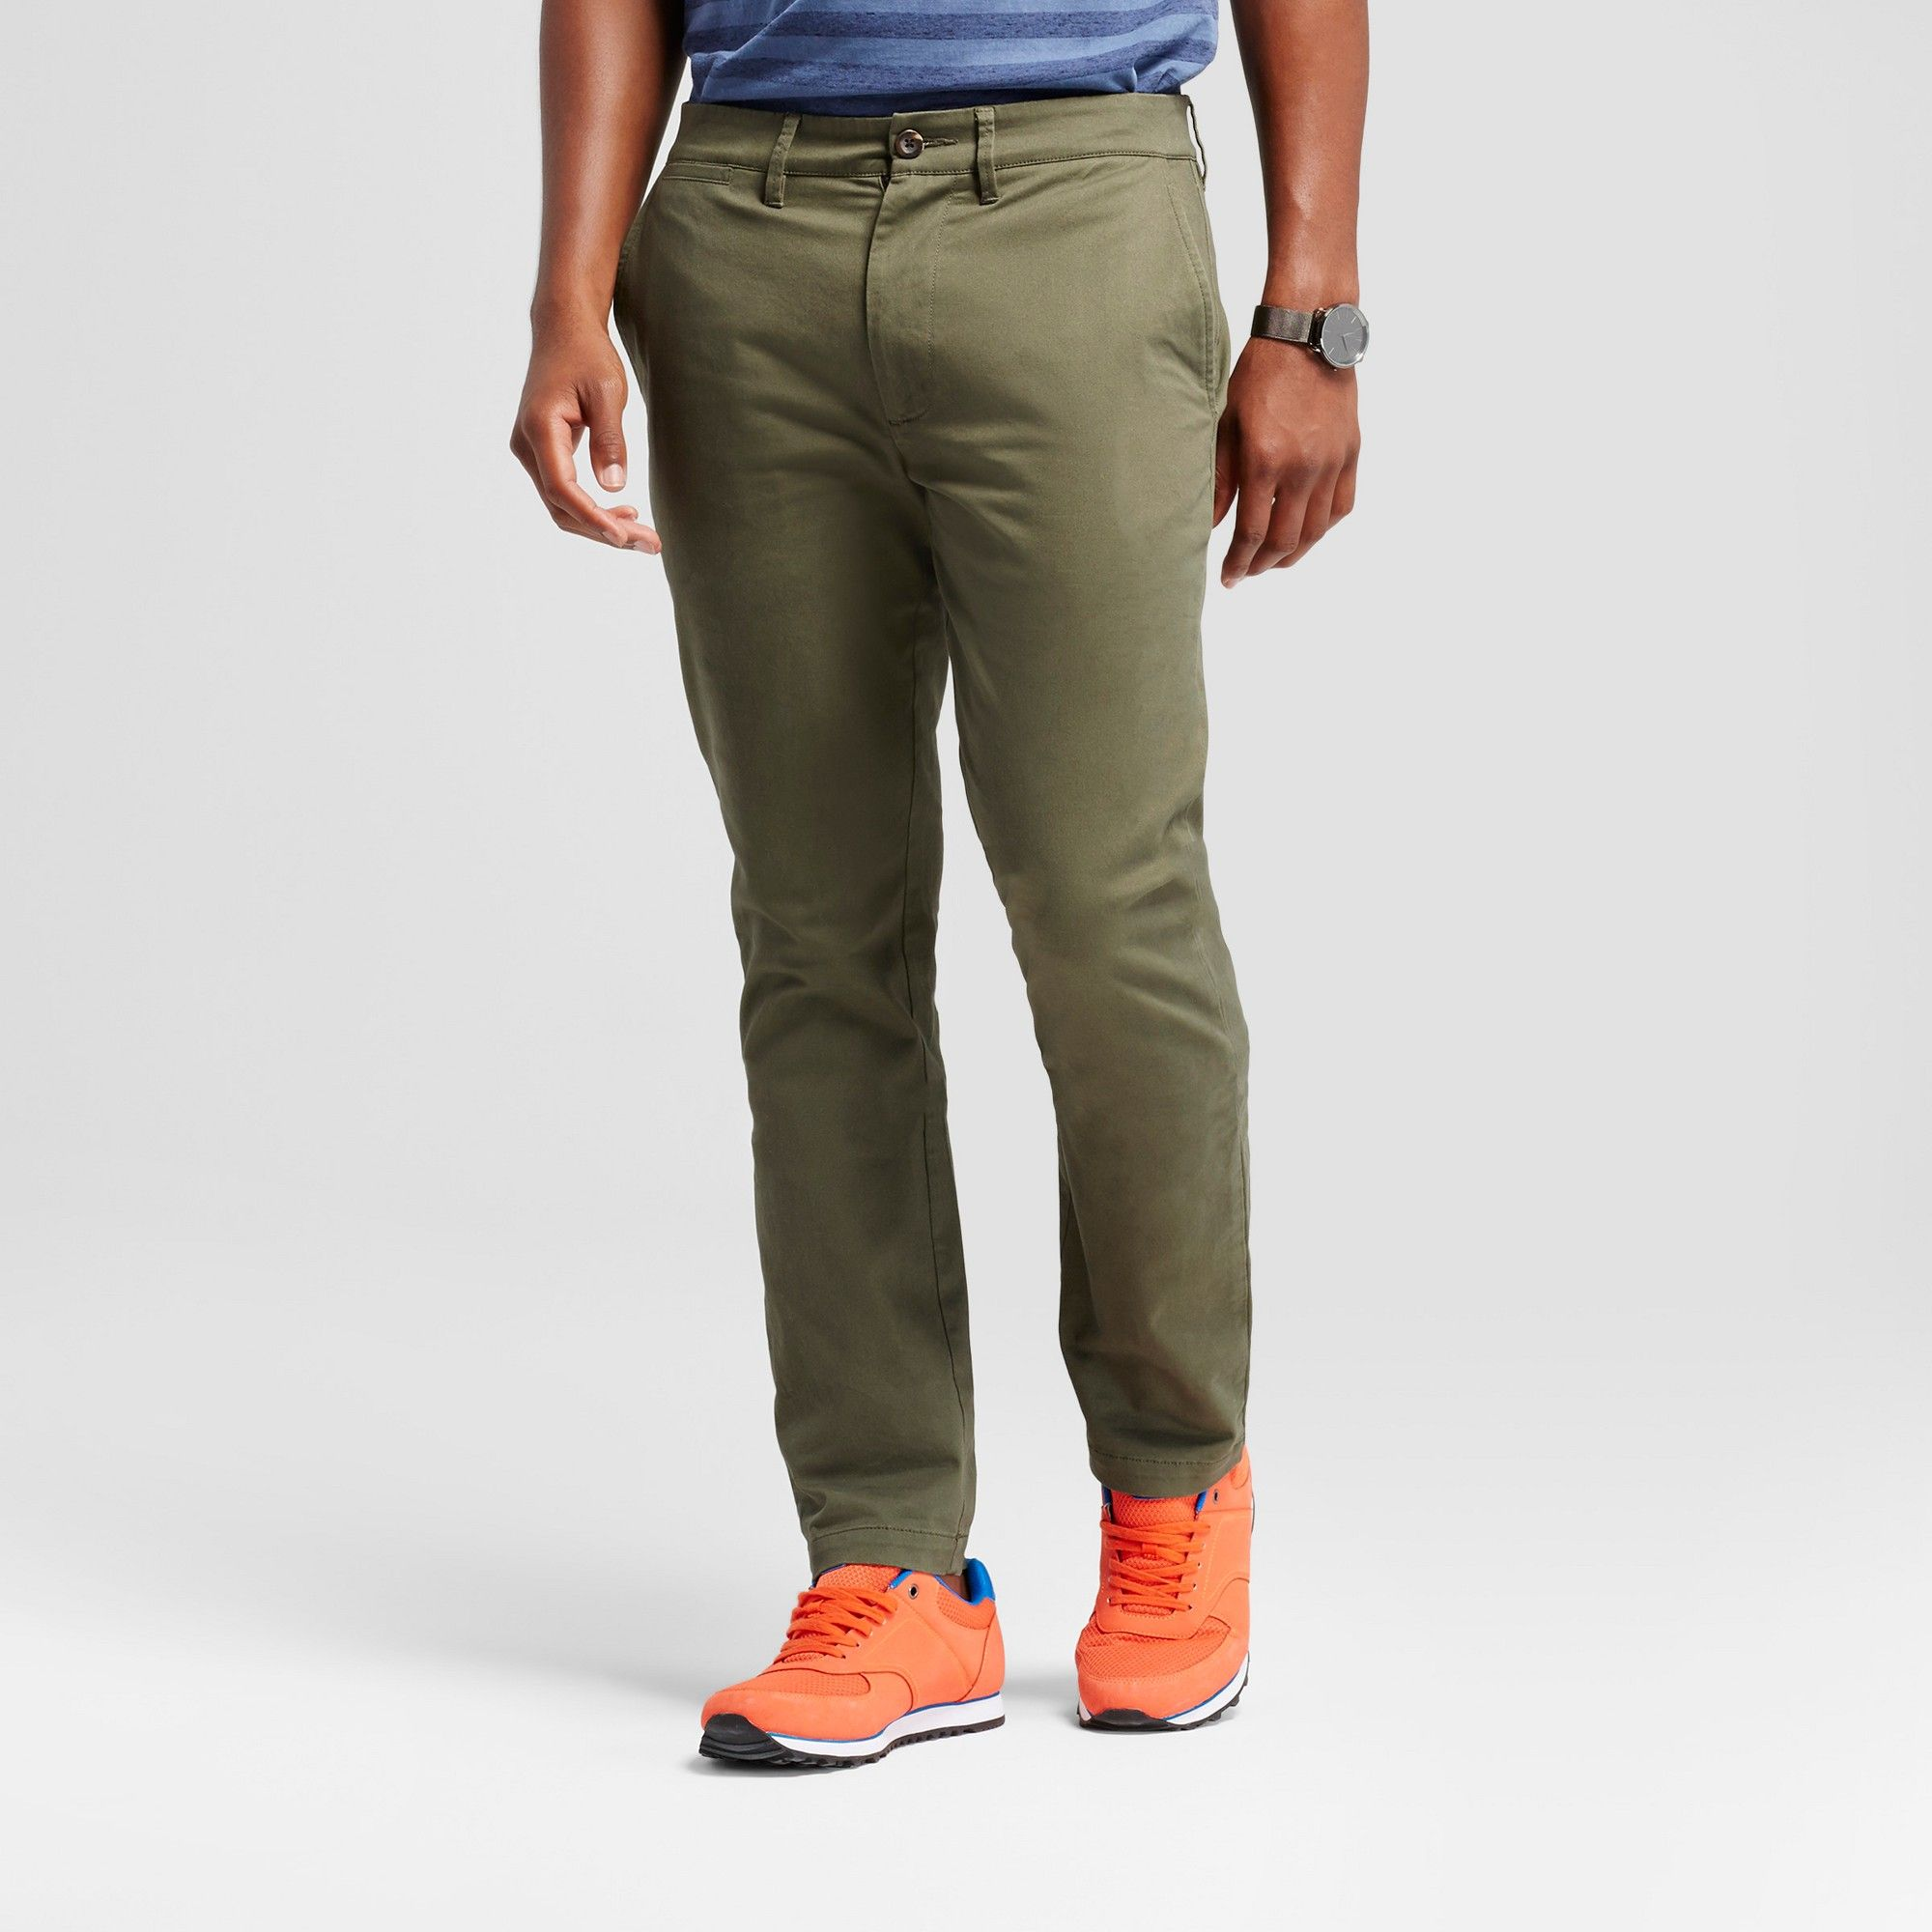 44a806f88426 Men's Athletic Fit Hennepin Chino Pants - Goodfellow & Co Olive 32x32, Green